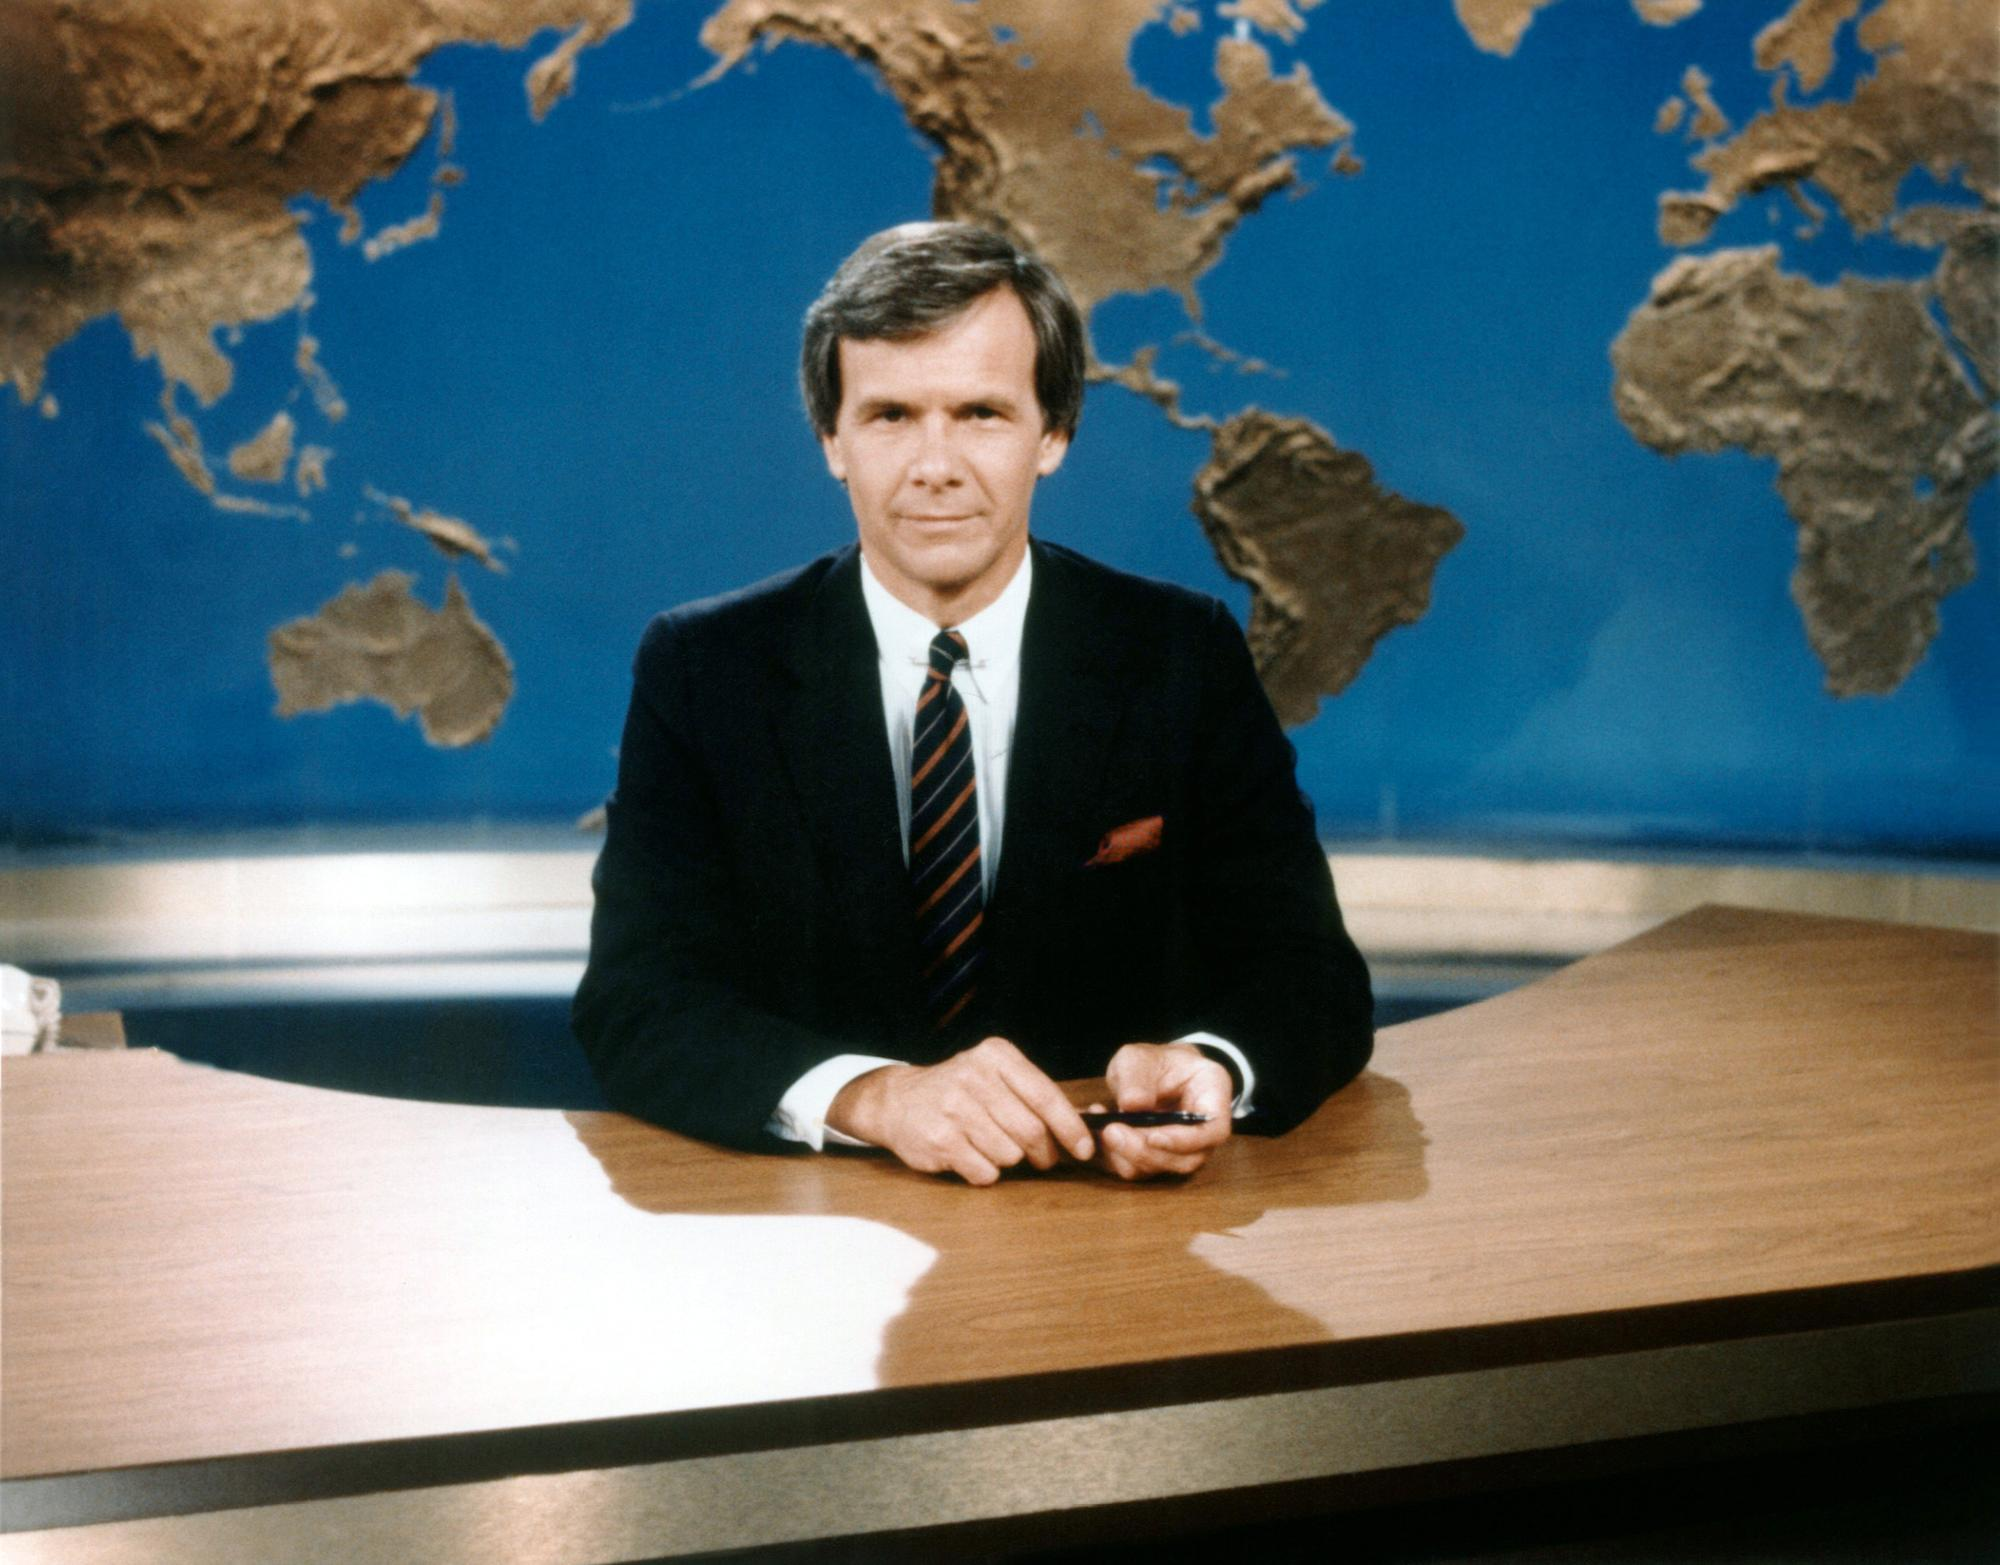 Tom Brokaw retires from NBC News after 55 years: Dan Rather, Lester Holt, Andrea Mitchell and more wish him well